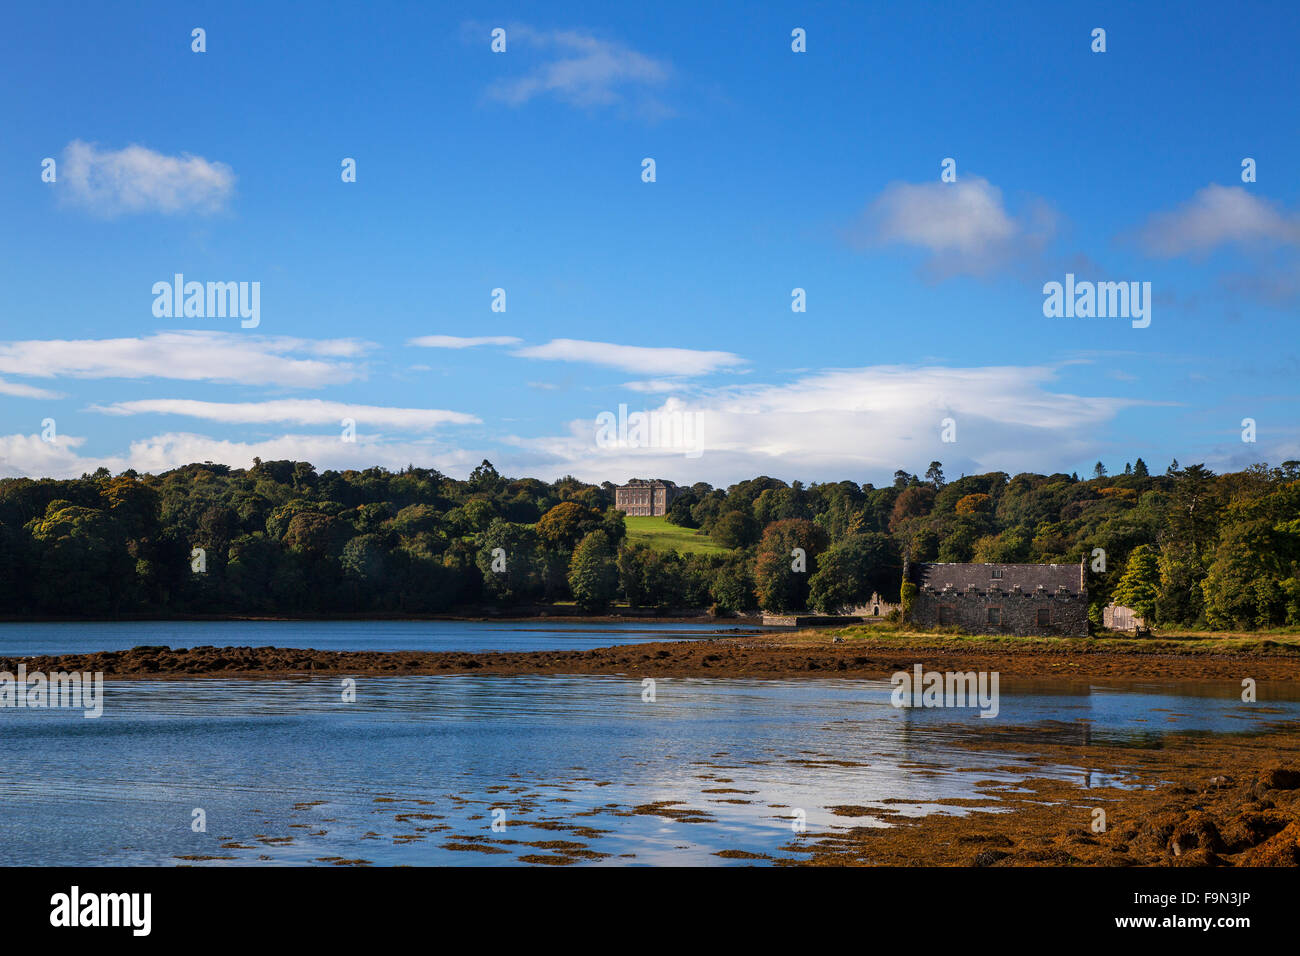 Distant 18th Century Castleward on the banks of Strangford Lough, County Down, Northern Ireland - Stock Image